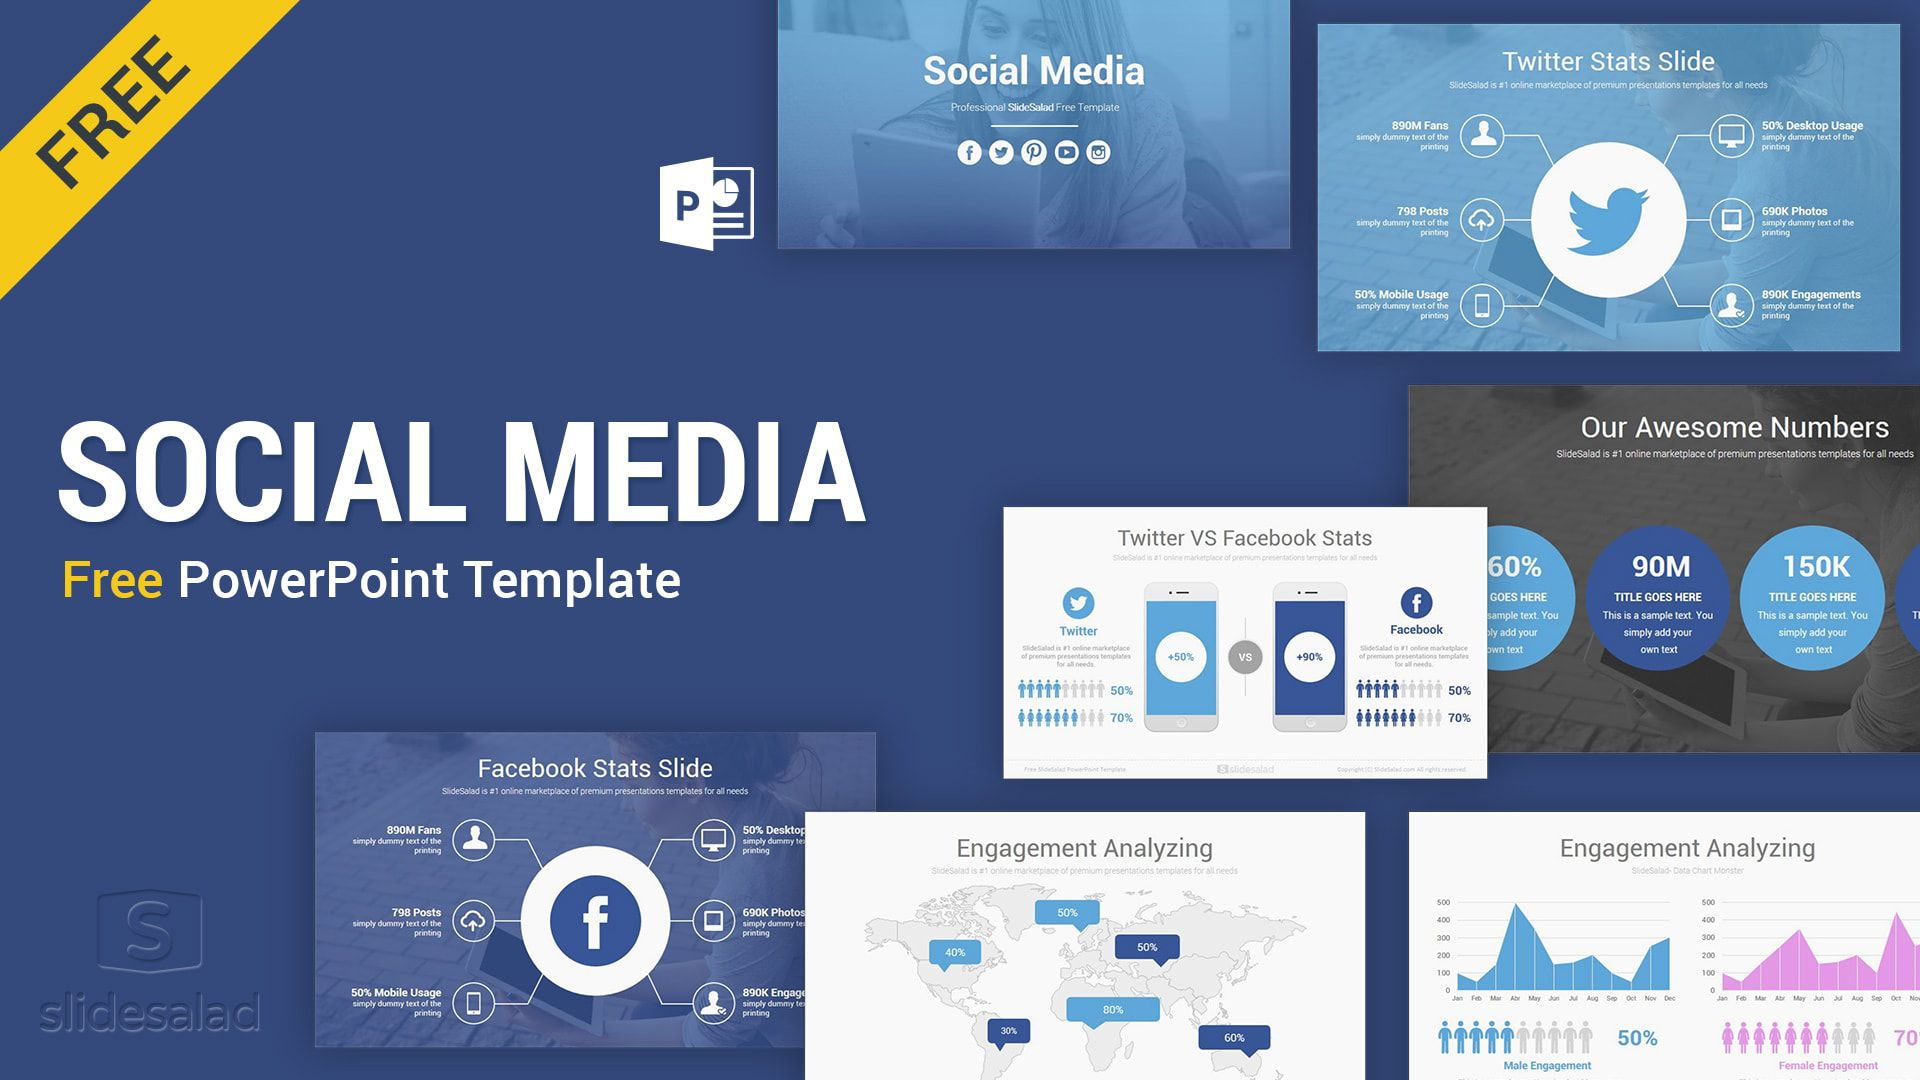 003 Imposing Social Media Ppt Template Free Idea  Download Report PowerpointFull